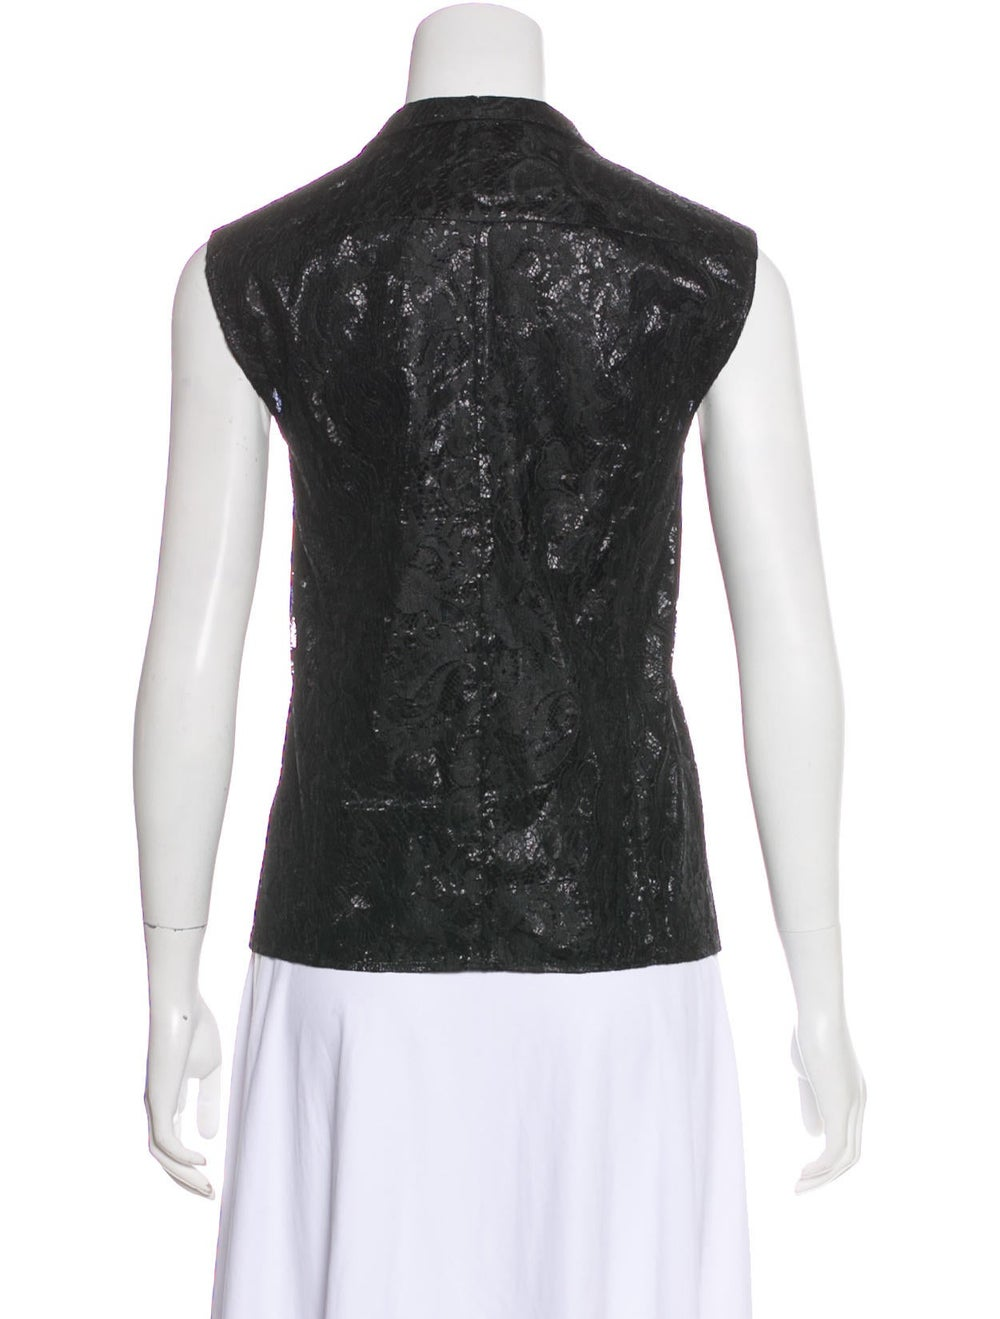 Balenciaga Lace Sleeveless Top Black - image 3